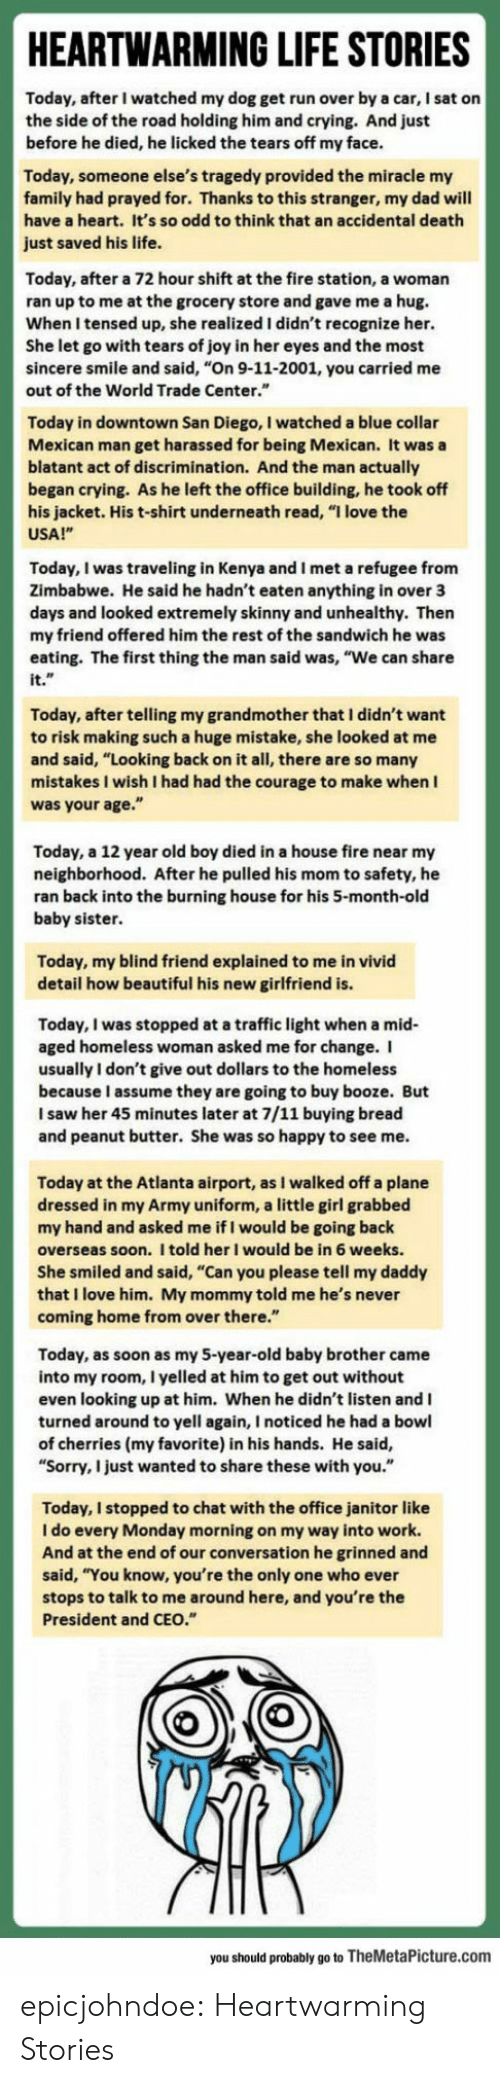 """Cherries: HEARTWARMING LIFE STORIES  Today, after I watched my dog get run over by a car, I sat on  the side of the road holding him and crying. And just  before he died, he licked the tears off my face.  ay, someone else's tragedy provided the miracle my  family had prayed for. Thanks to this stranger, my dad will  have a heart. It's so odd to think that an accidental death  just saved his life.  Today, after a 72 hour shift at the fire station, a woman  ran up to me at the grocery store and gave me a hug.  When I tensed up, she realized I didn't recognize her.  She let go with tears of joy in her eyes and the most  sincere smile and said, """"On 9-11-2001, you carried me  out of the World Trade Center.""""  Today in downtown San Diego, I watched a blue collar  Mexican man get harassed for being Mexican. It was a  blatant act of discrimination. And the man actually  began crying. As he left the office building, he took off  s jacket. His t-shirt underneath read, """"I love the  USA!""""  Today, I was traveling in Kenya and I met a refugee from  Zimbabwe. He said he hadn't eaten anything in over 3  ys and looked extremely skinny and unhealthy. Then  my friend offered him the rest of the sandwich he was  eating. The first thing the man said was, """"We can share  it.  Today, after telling my grandmother that I didn't want  to risk making such a huge mistake, she looked at  nd said, """"Looking back on it all, there are so many  stakes I wish I had had the courage to make when I  was your age.""""  Today, a 12 year old boy died in a house fire near my  neighborhood. After he pulled his mom to safety, he  ran back into the burning house for his 5-month-old  baby sister  Today, my blind friend explained to me in vivid  detail how beautiful his new girlfriend is  Today, I was stopped at a traffic light when a mid  aged homeless woman asked me for change. I  usually I don't give out dollars to the homeless  because I assume they are going to buy booze. But  I saw her 45 minutes later at 7/11 """